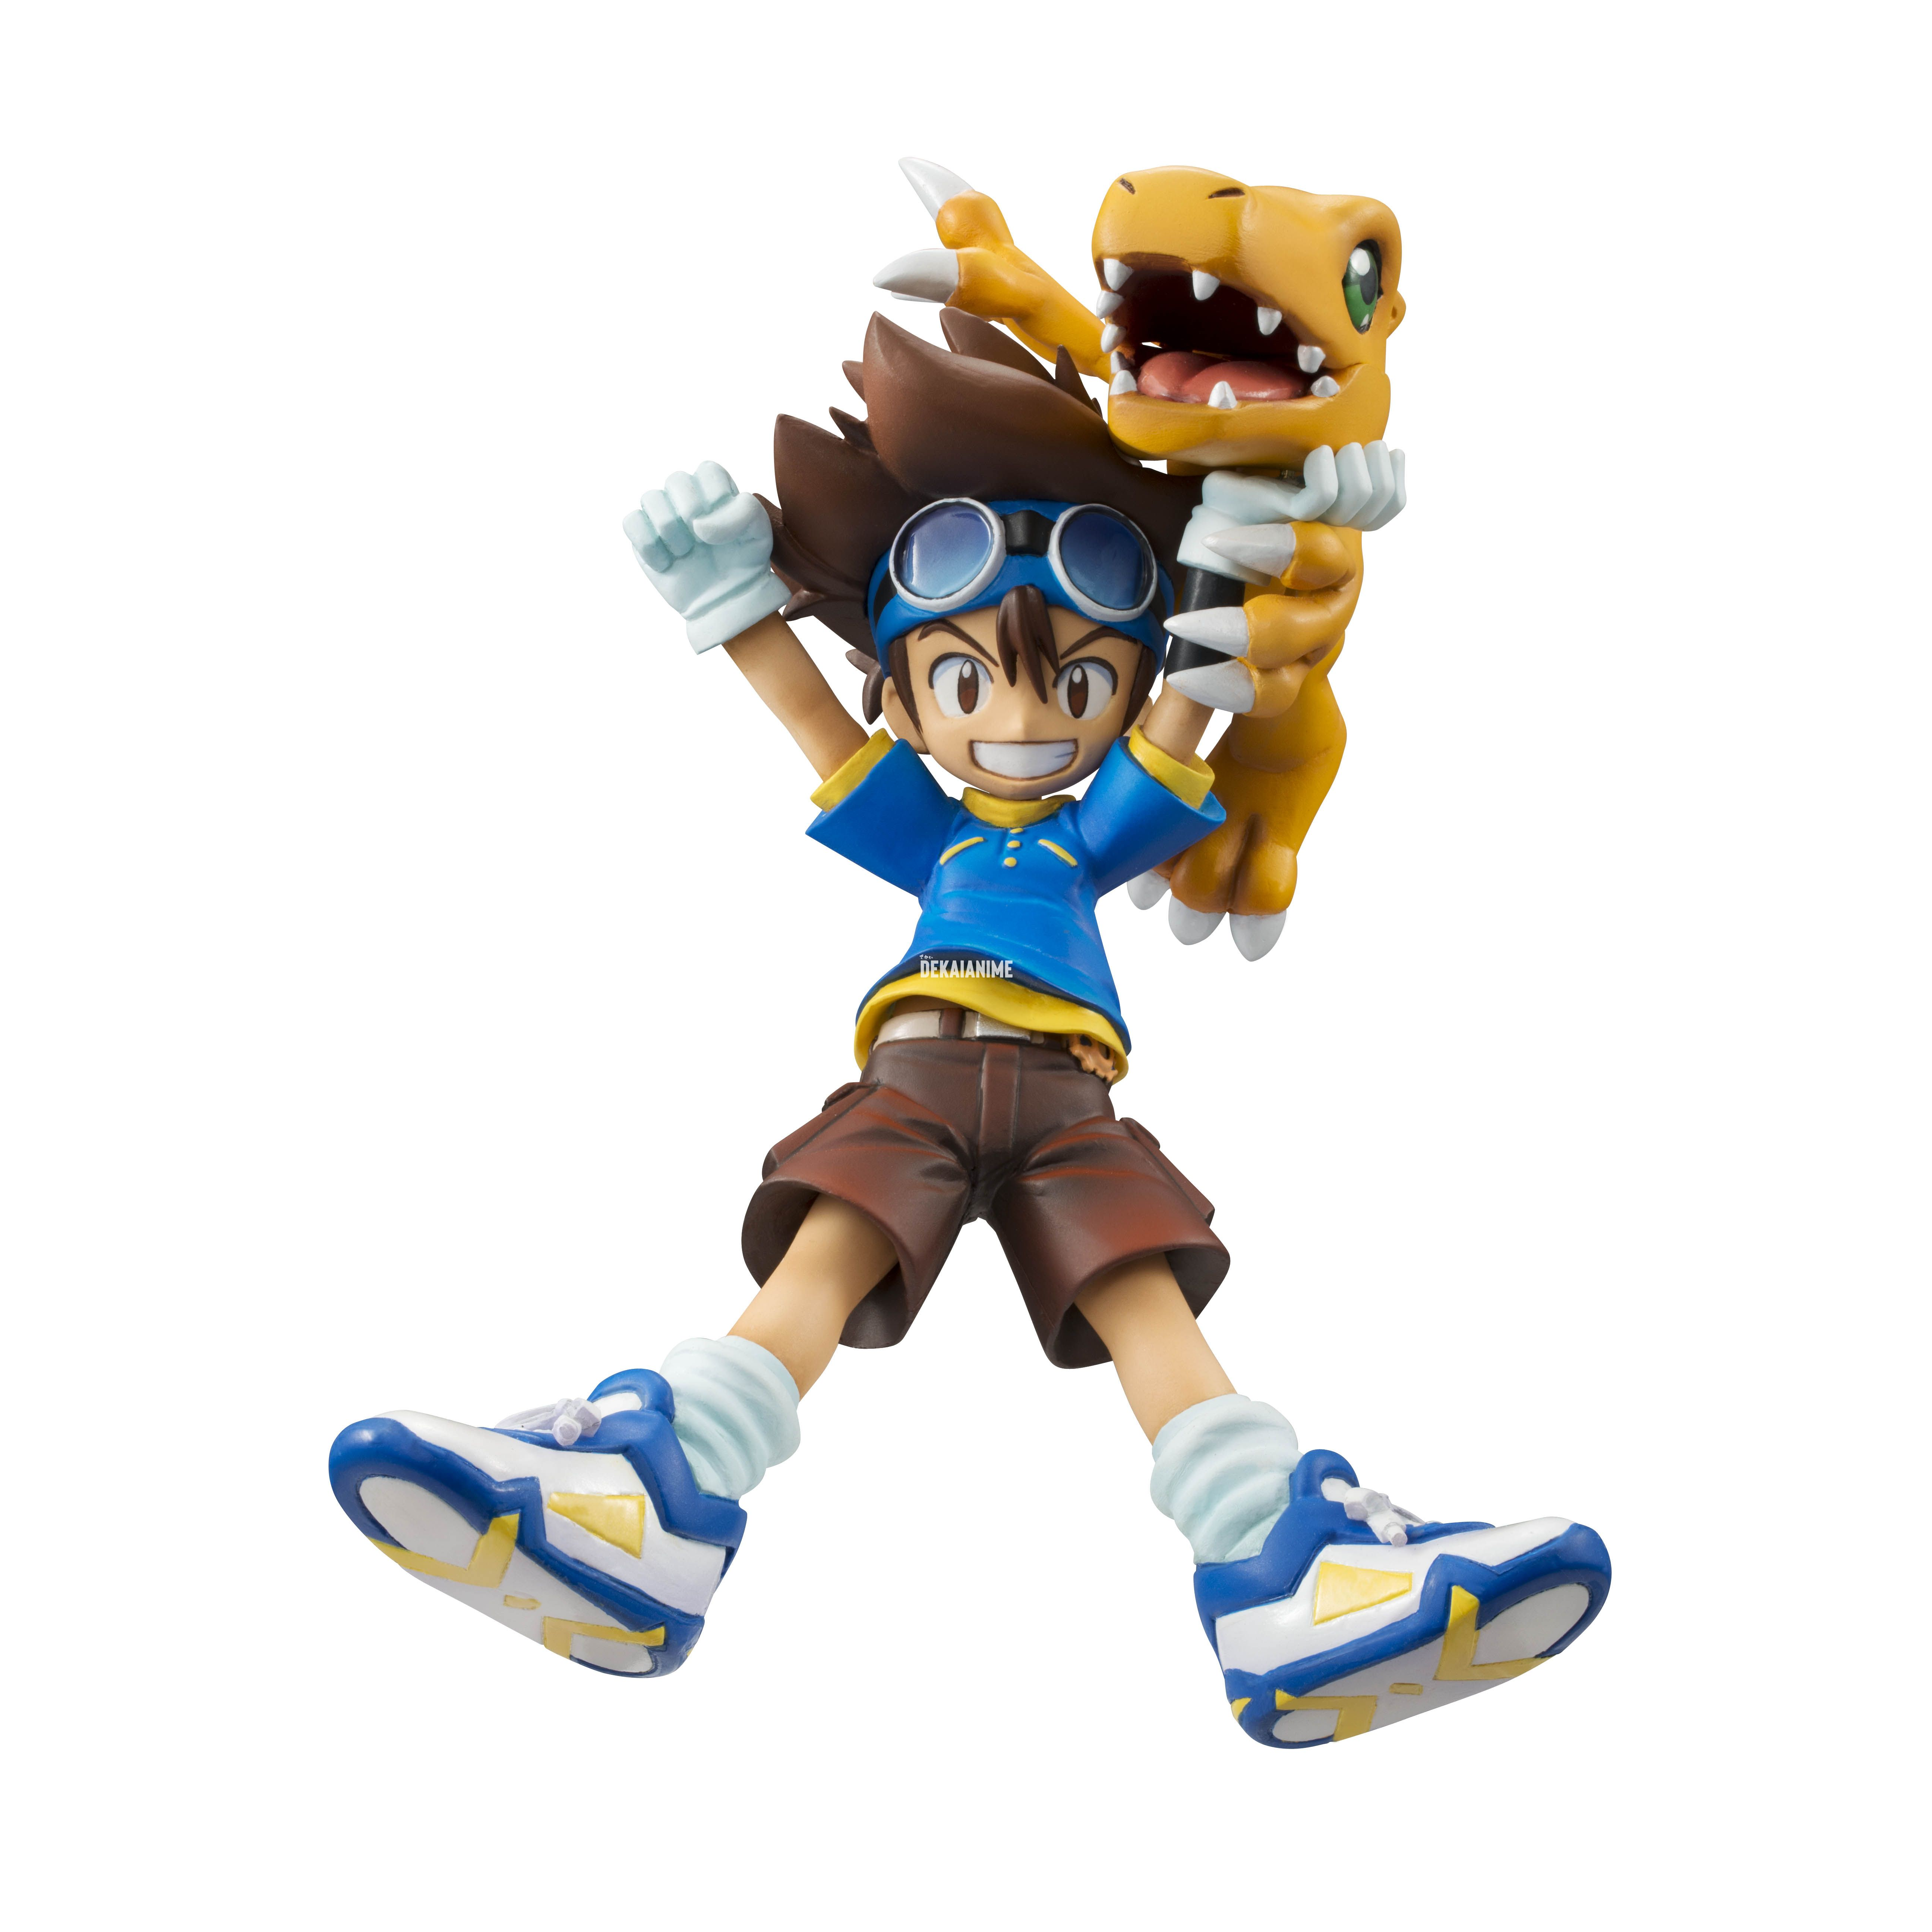 Digimon - Taichi and Agumon G E M  Series Figure (Mega House)